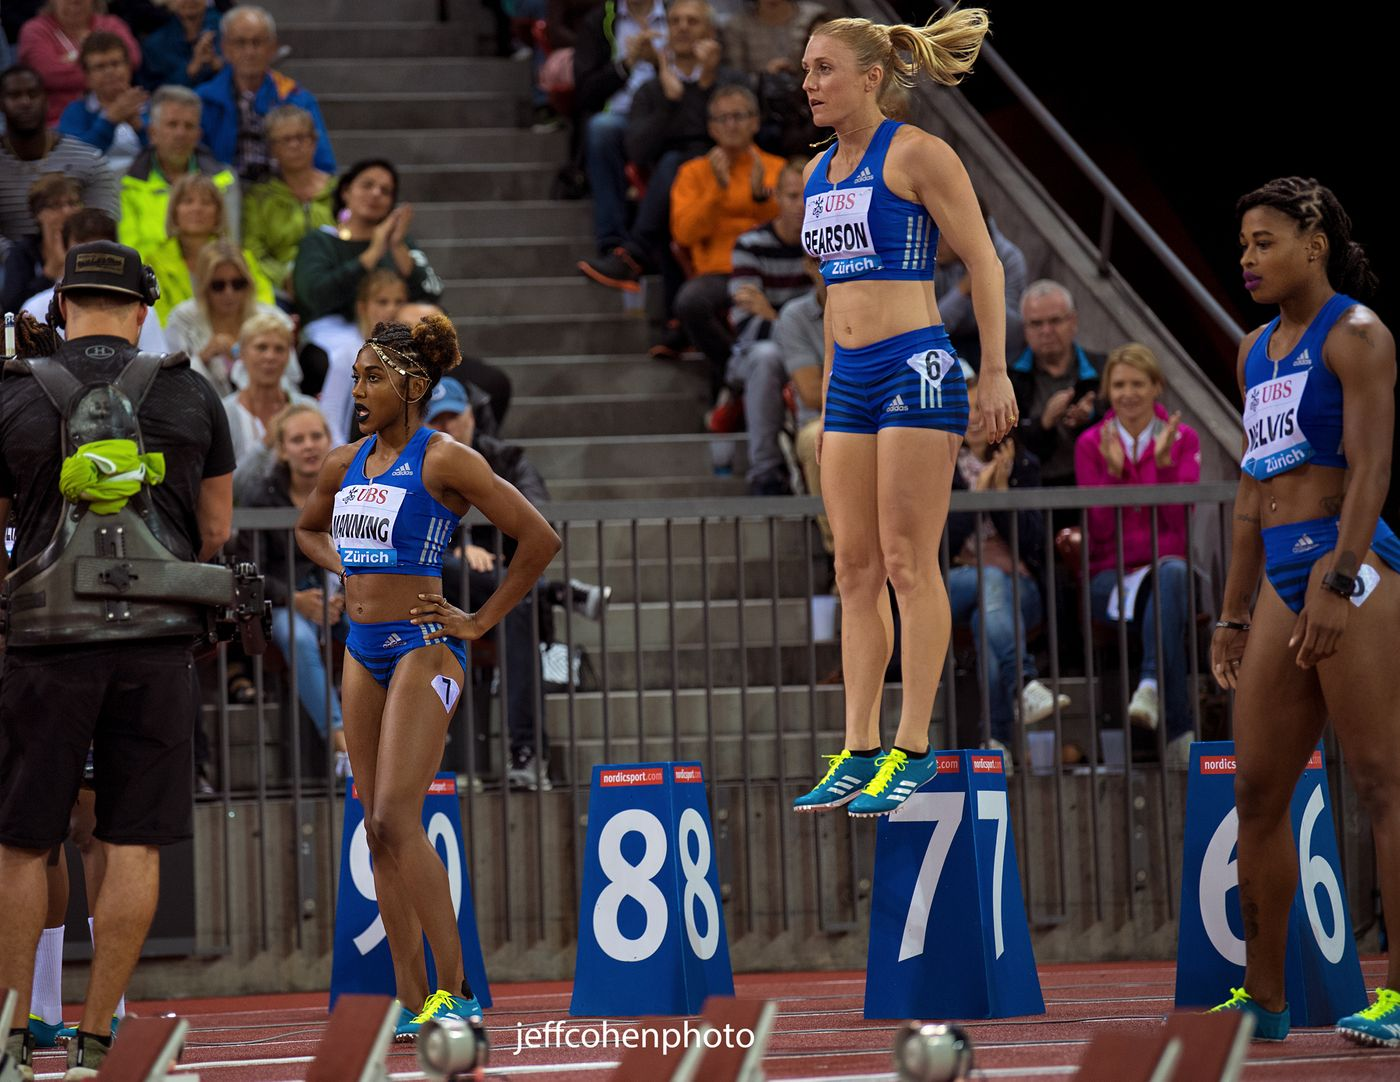 2017-weltklasse-zurich--2748-100mh-pearson-start-jump--jeff-cohen-photo-web-.jpg